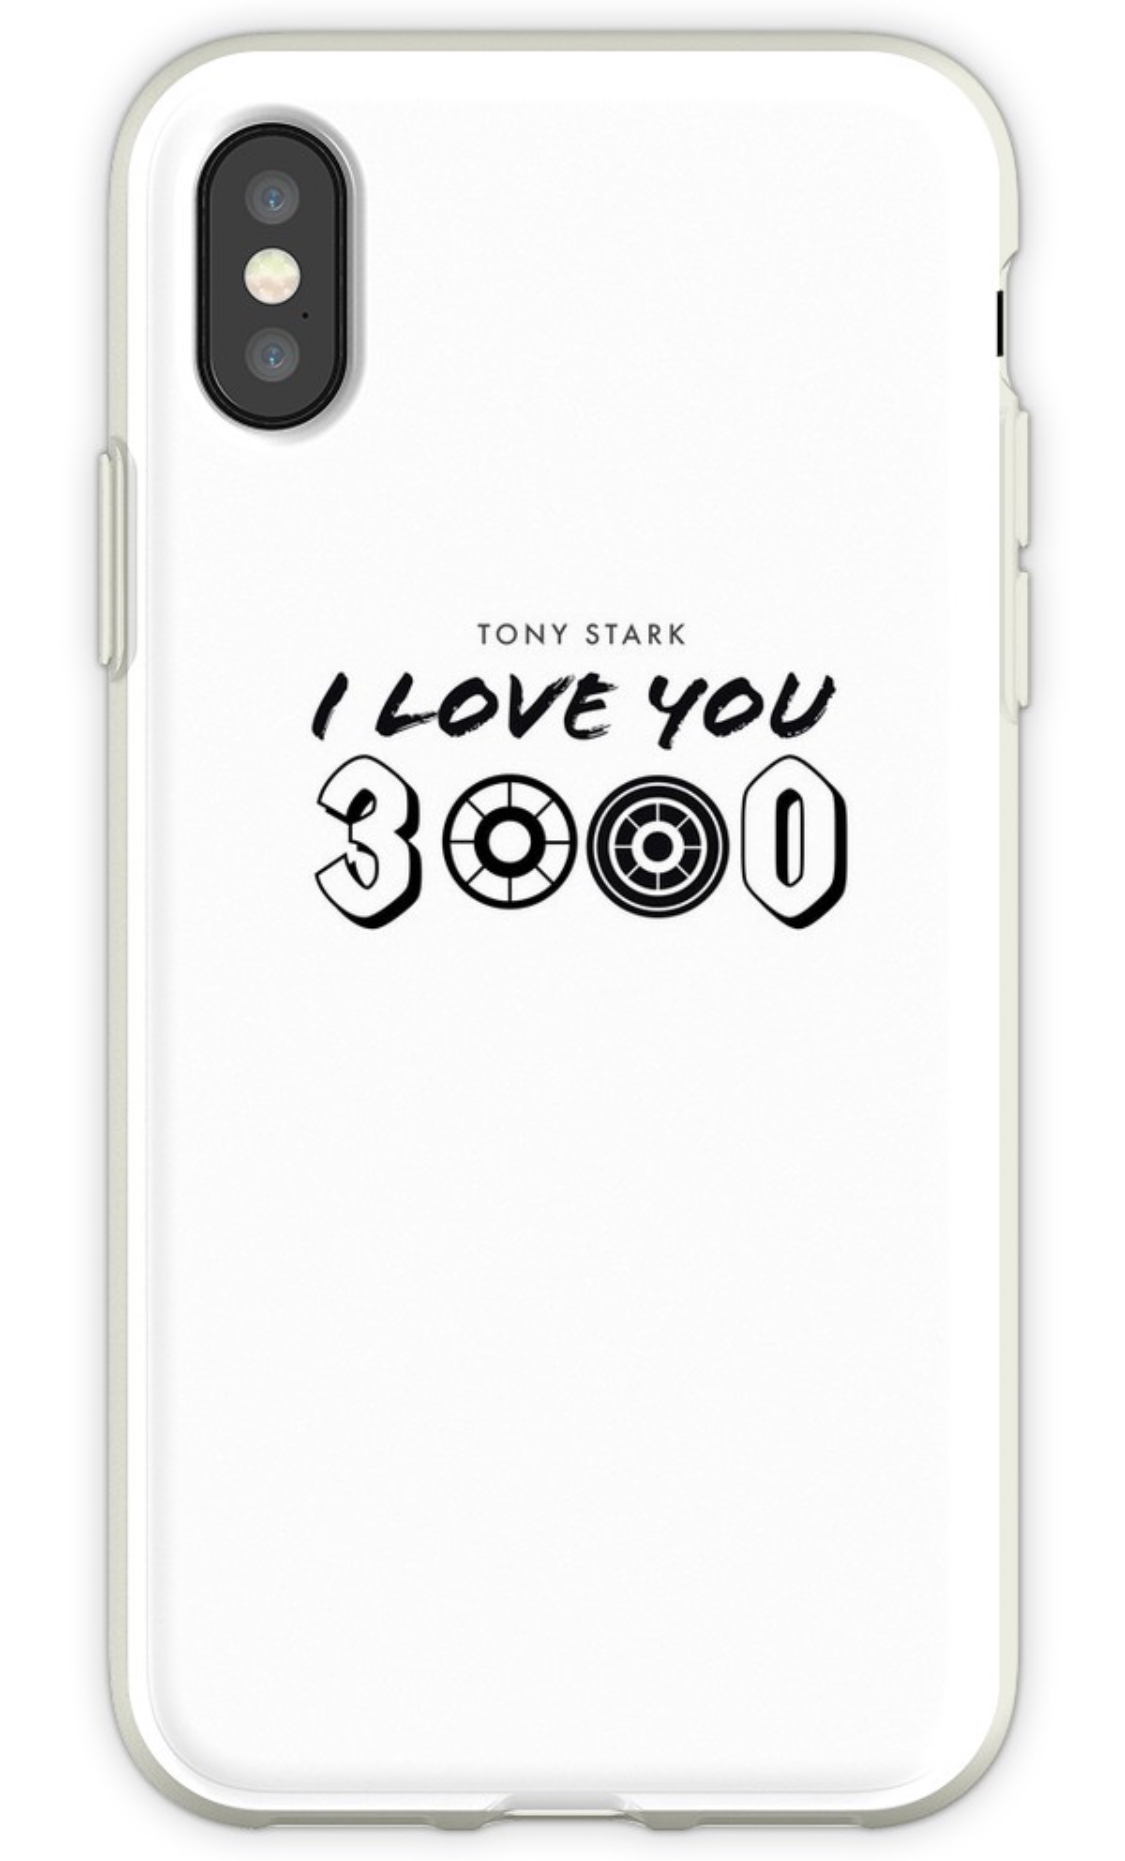 Iphone Case I love you 3000 Iron Man